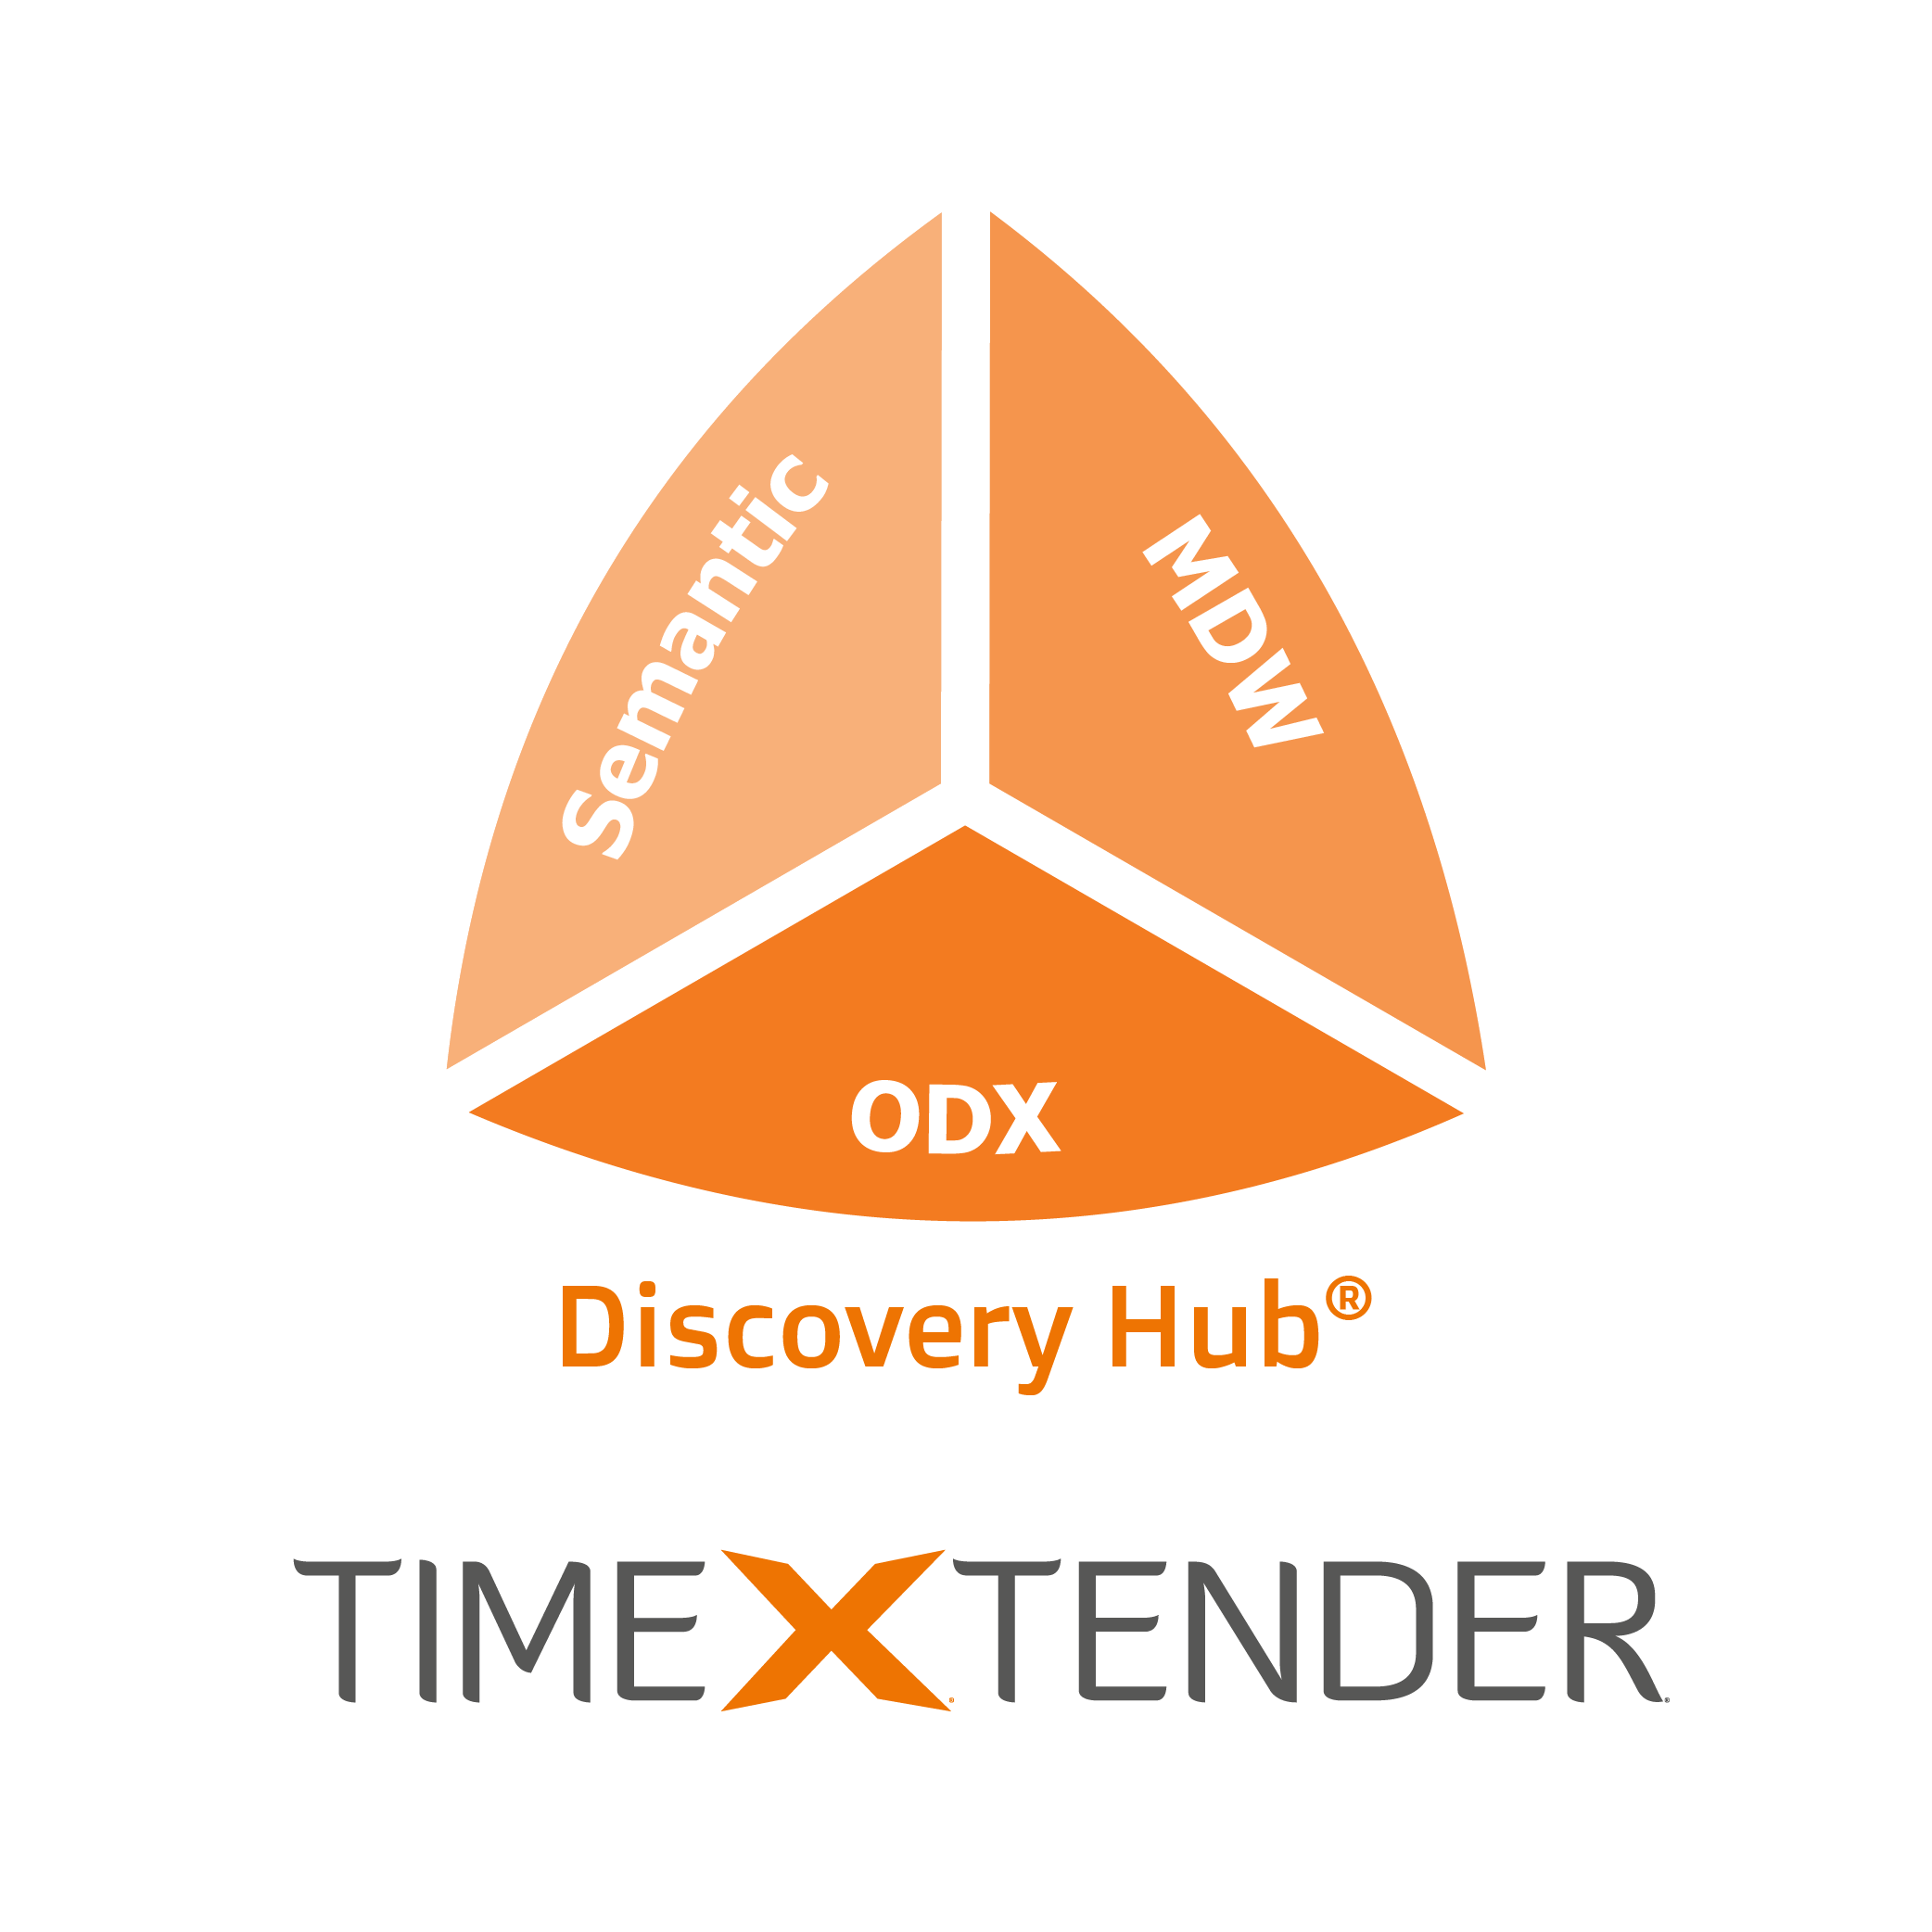 TimeXtender_Discovery hub